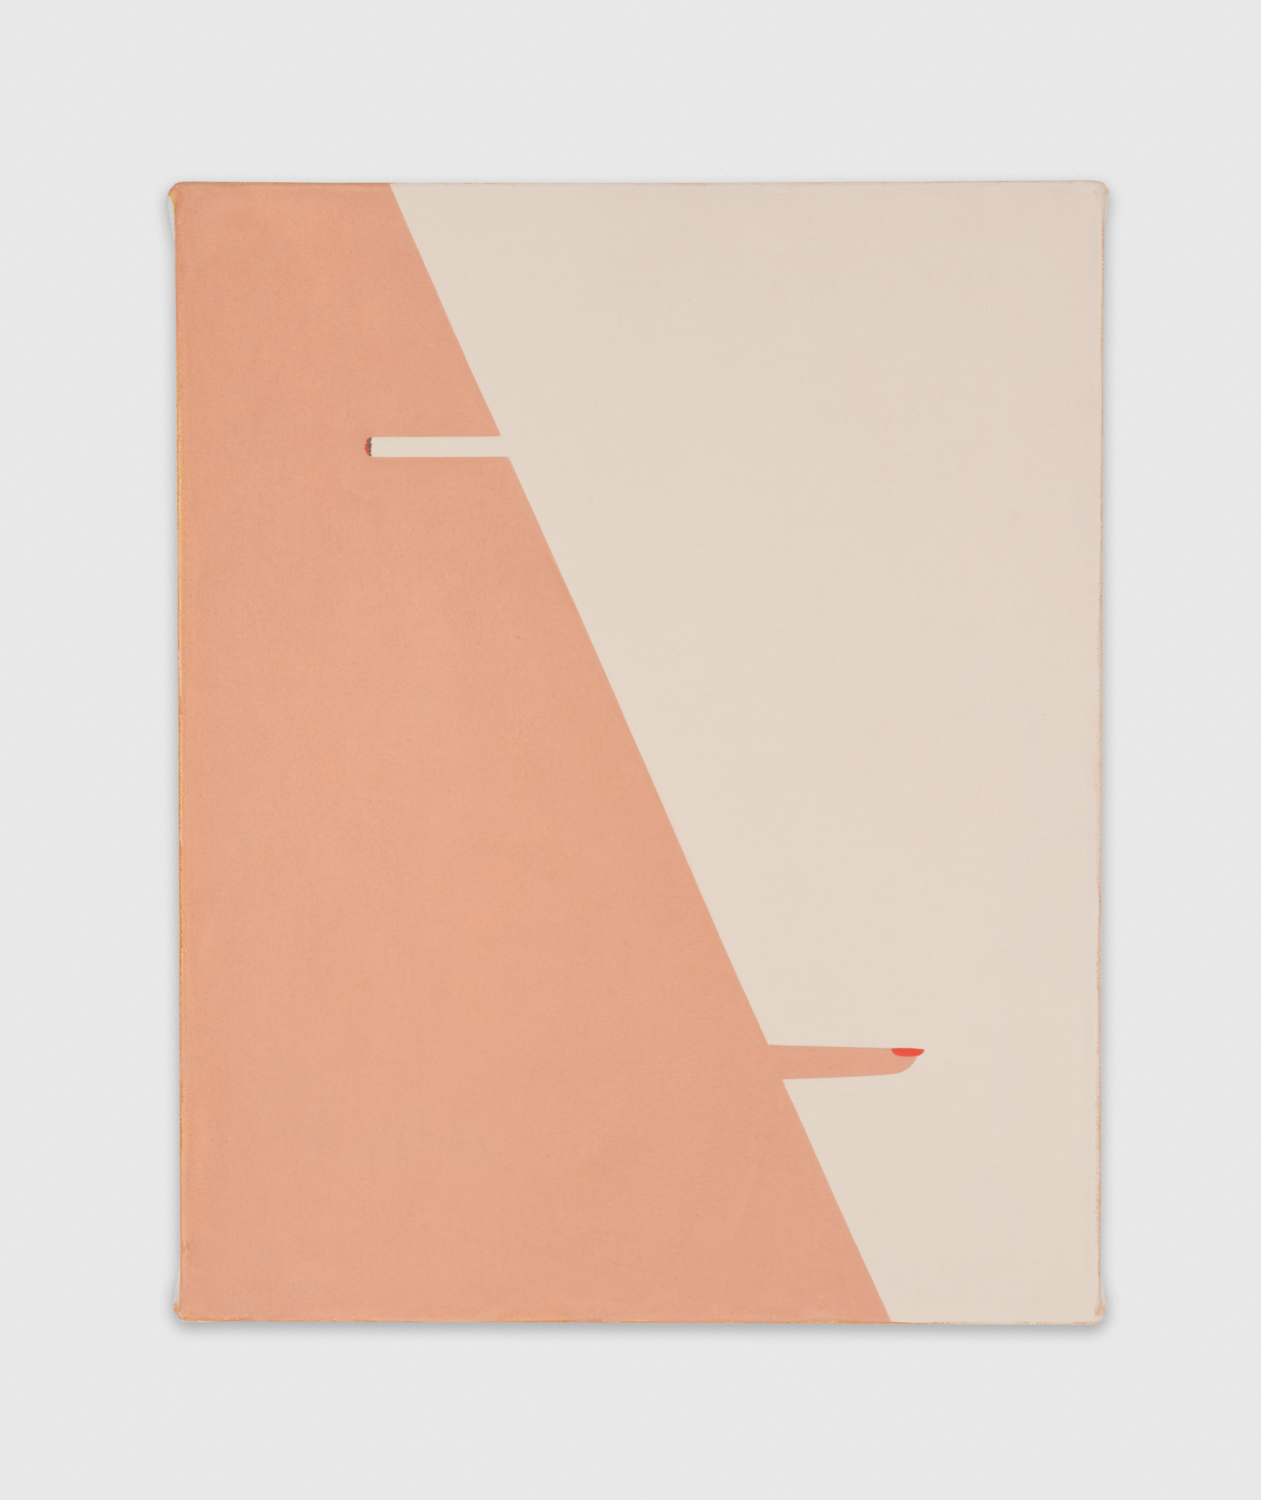 Alice Tippit  Close  2016 Oil on canvas 16h x 13w in ATip003